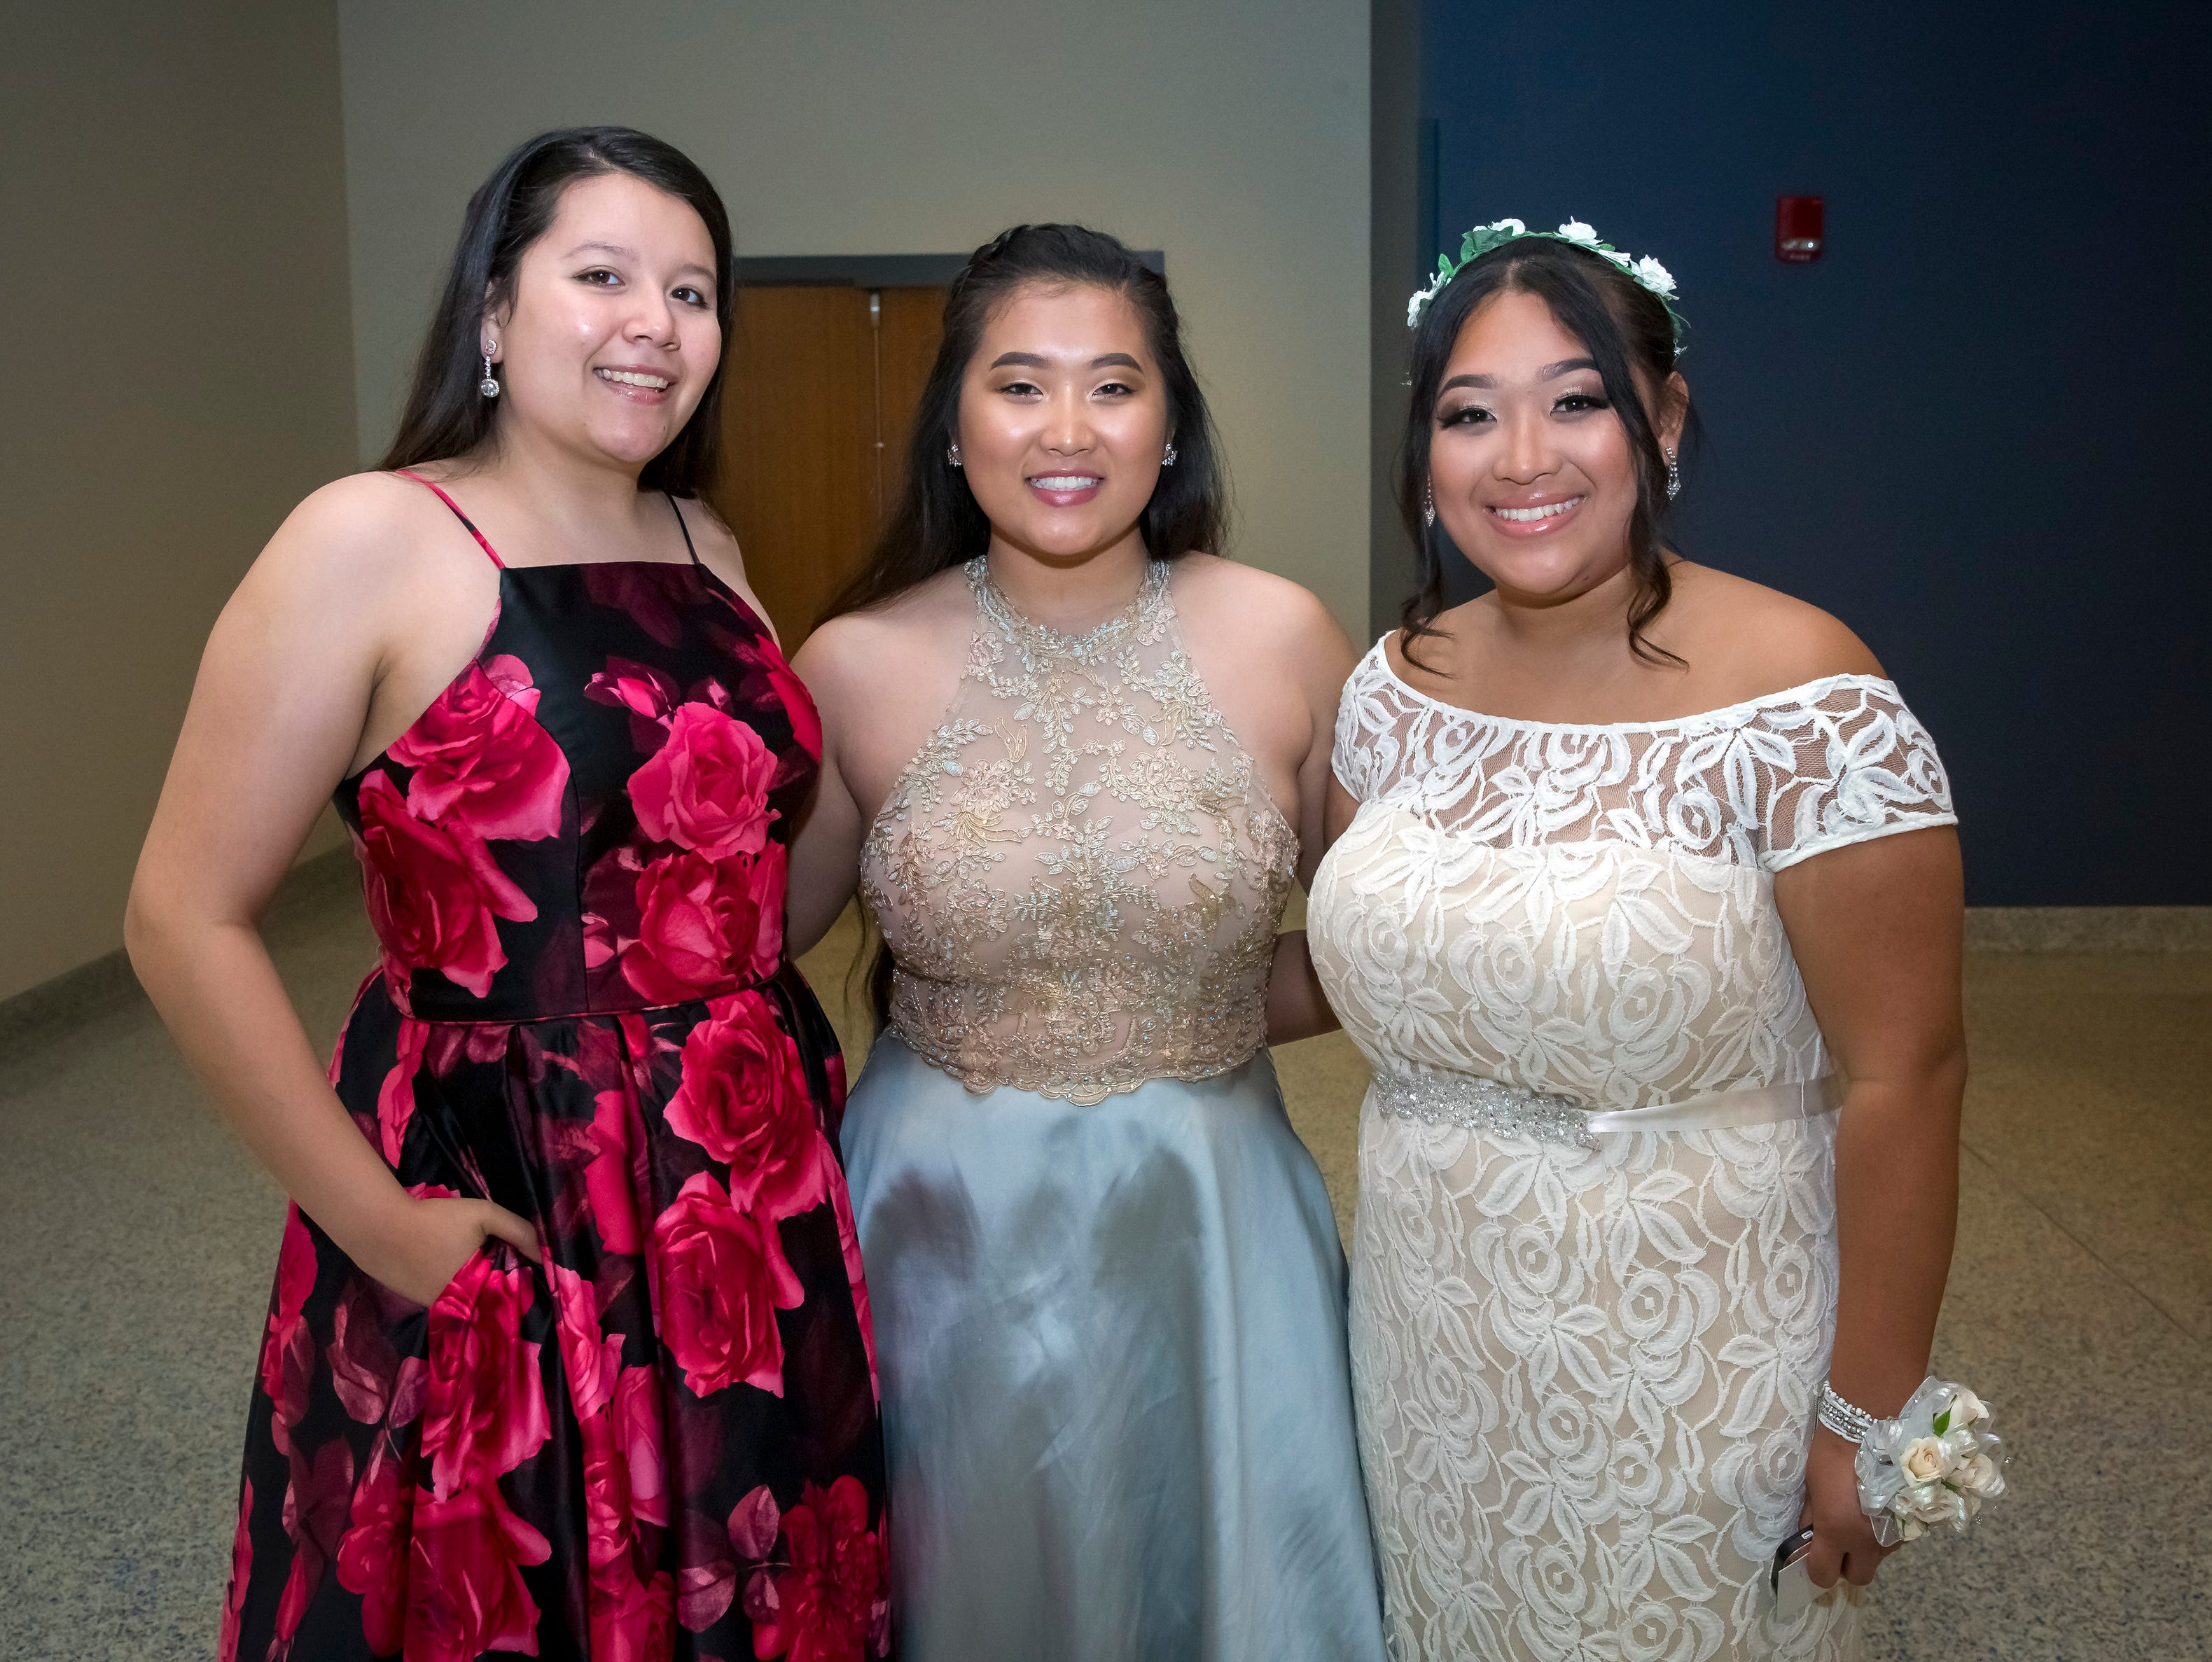 Arriving at the Stewarts Creek High School prom held at MTSU, Friday, April 5, 2019.JIM DAVIS/for the DNJ